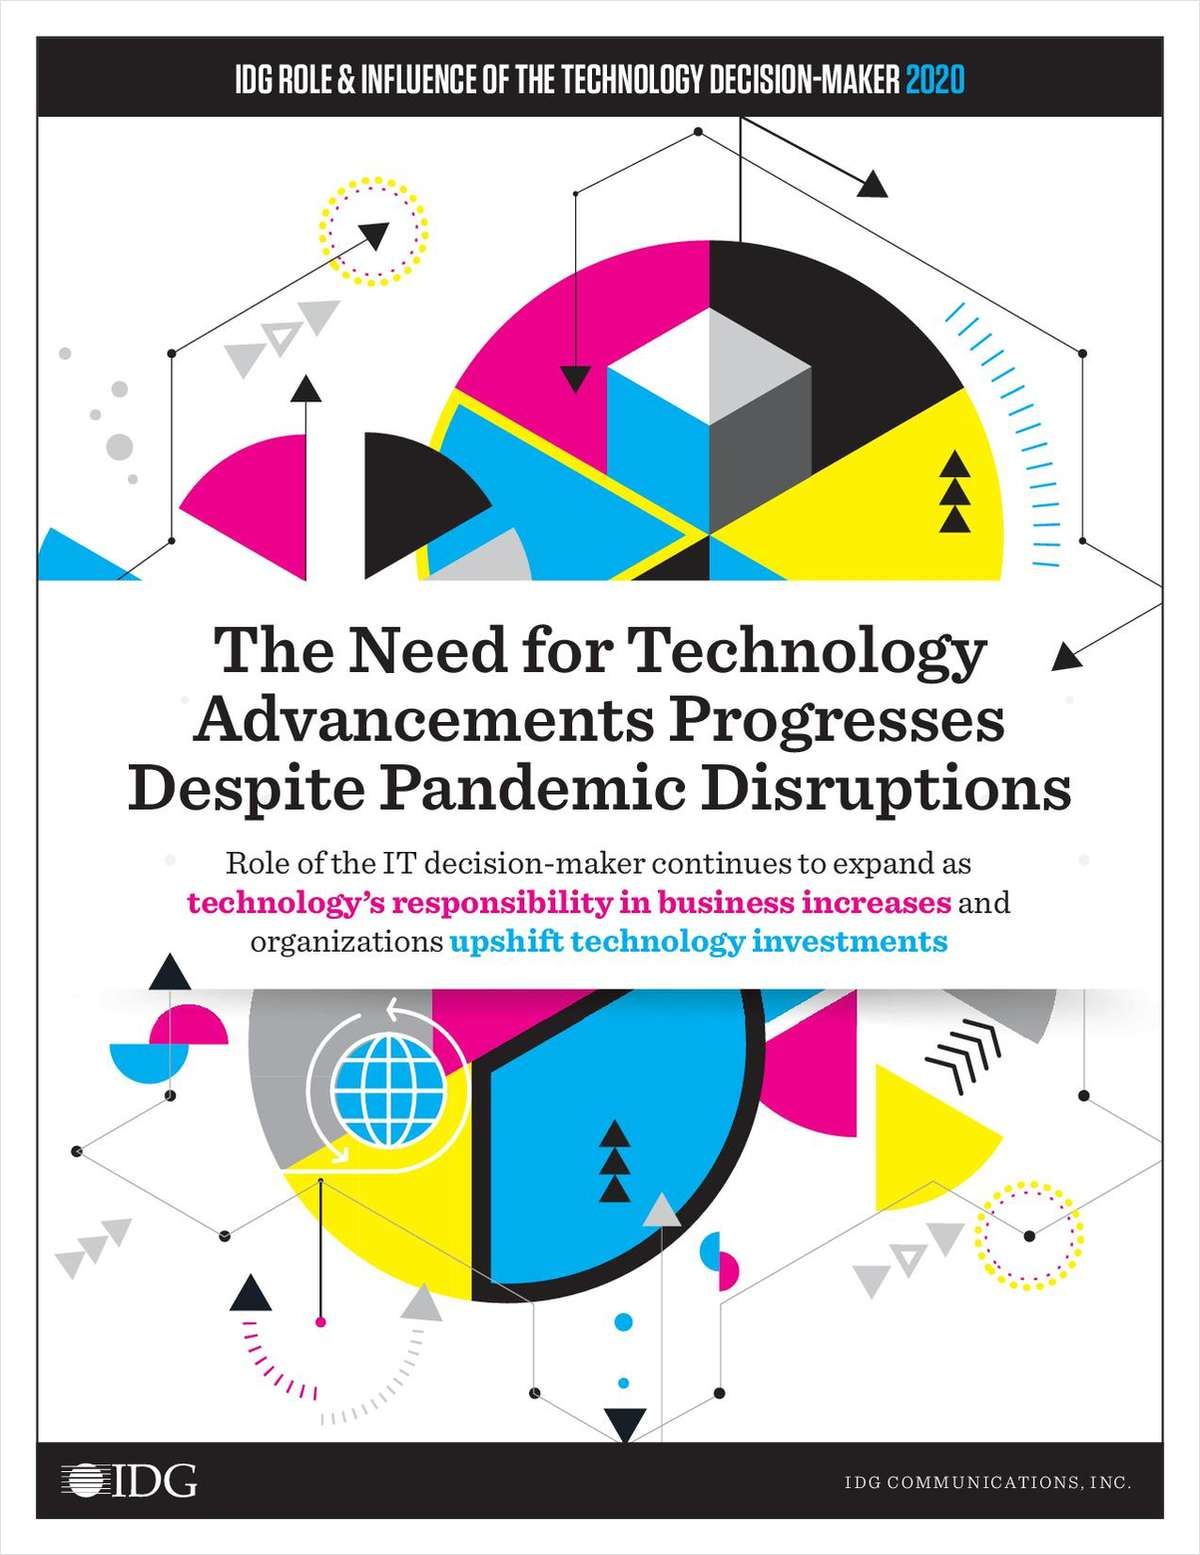 Understand the Role & Influence of the Technology Decision-Maker